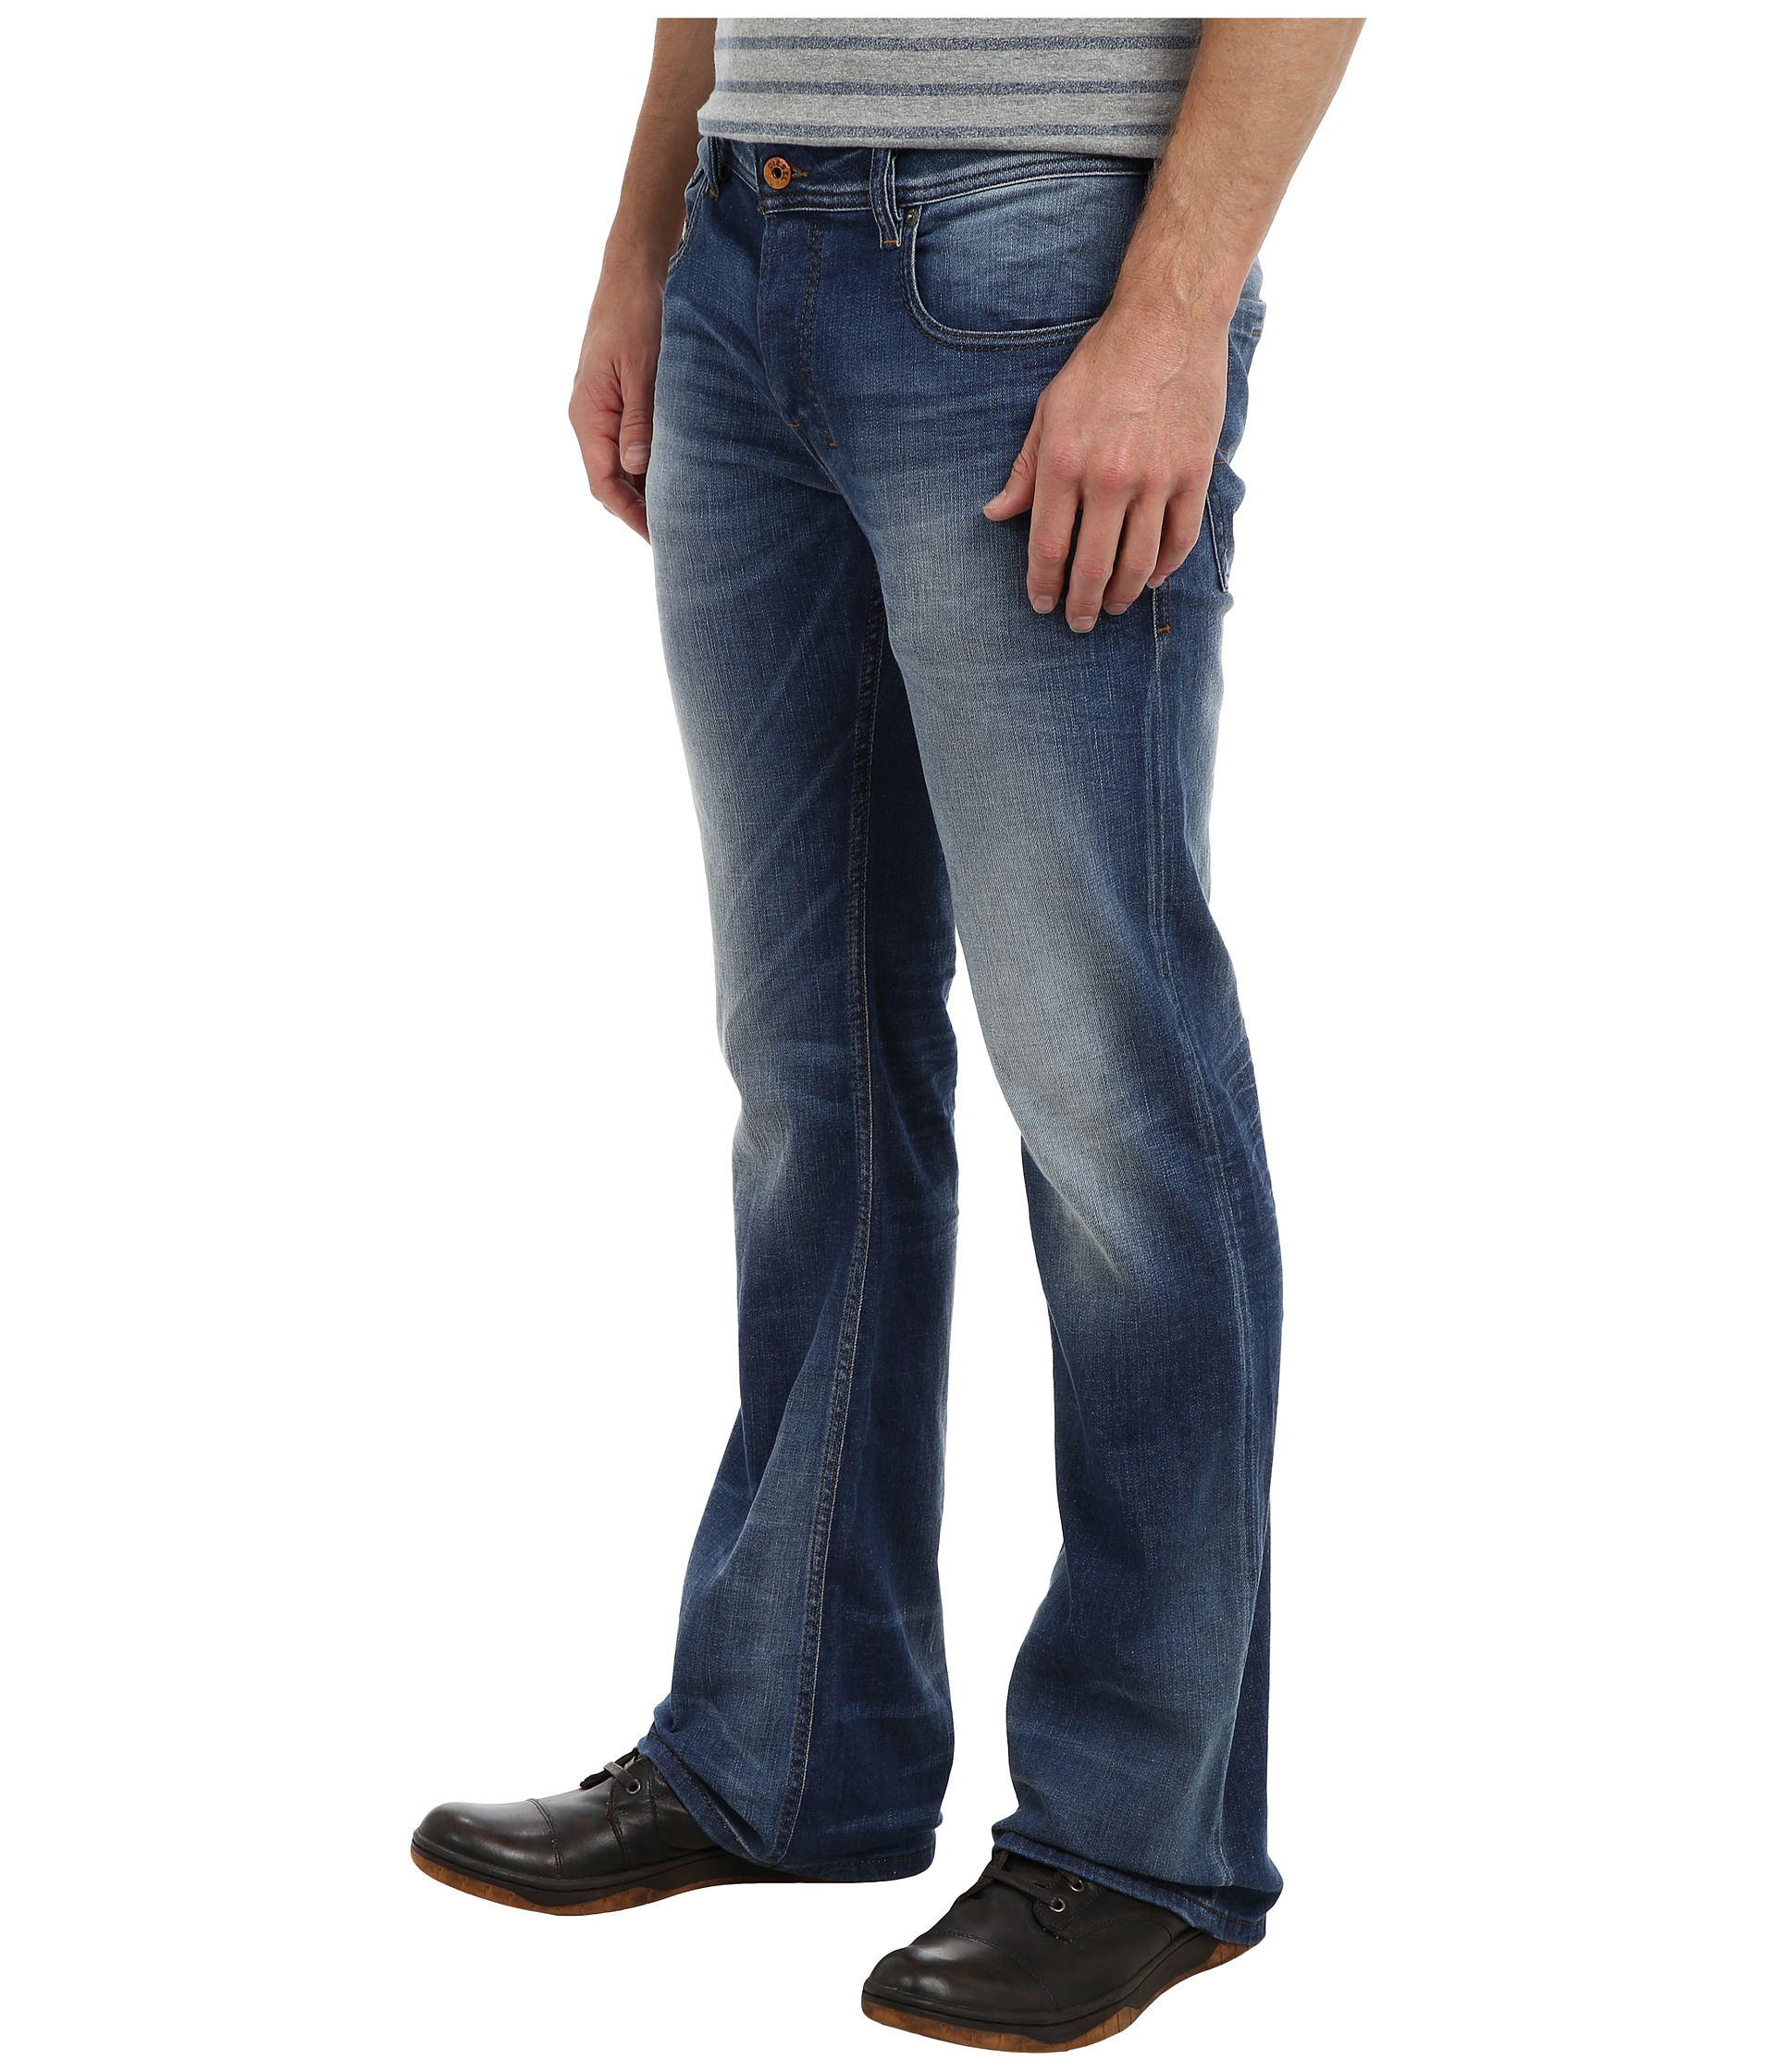 Men Bootcut Jeans Images Dress With Thong Lingerie